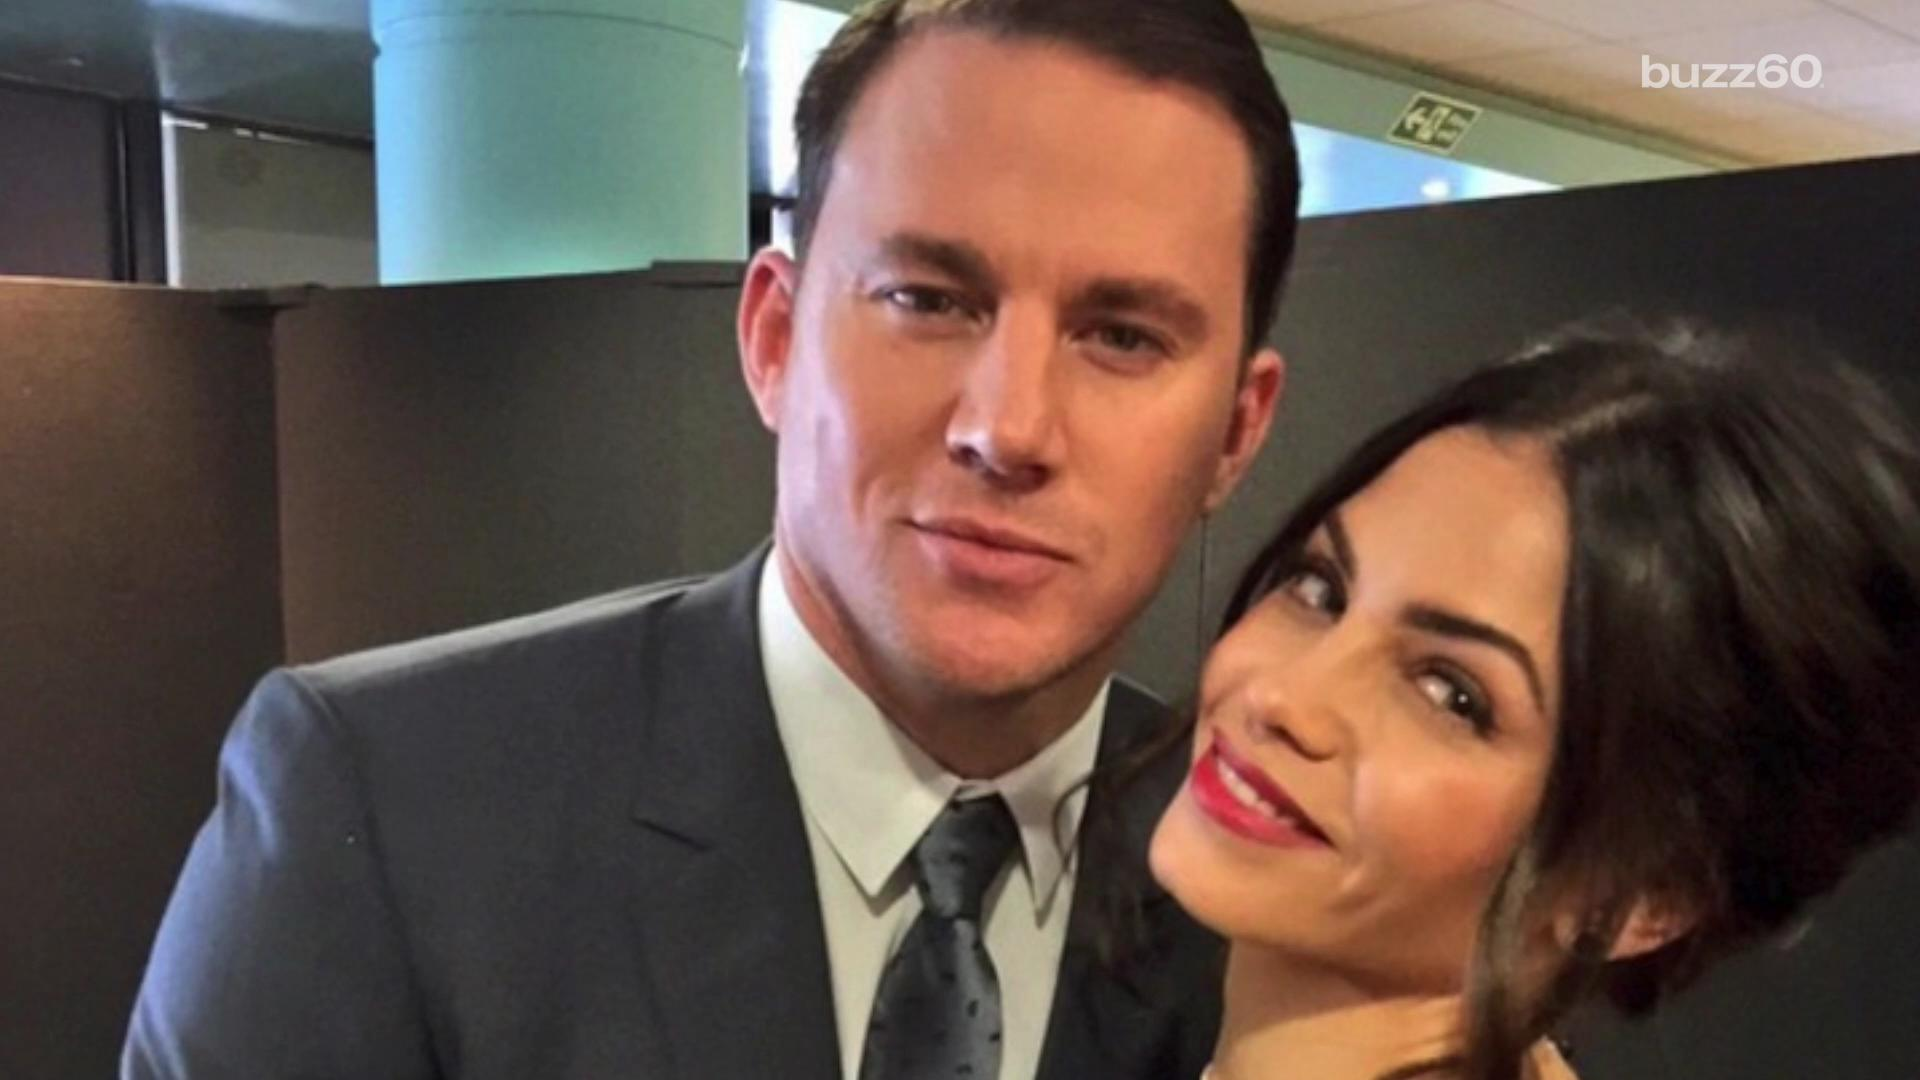 Channing Tatum's wife got him a rescue horse for his birthday